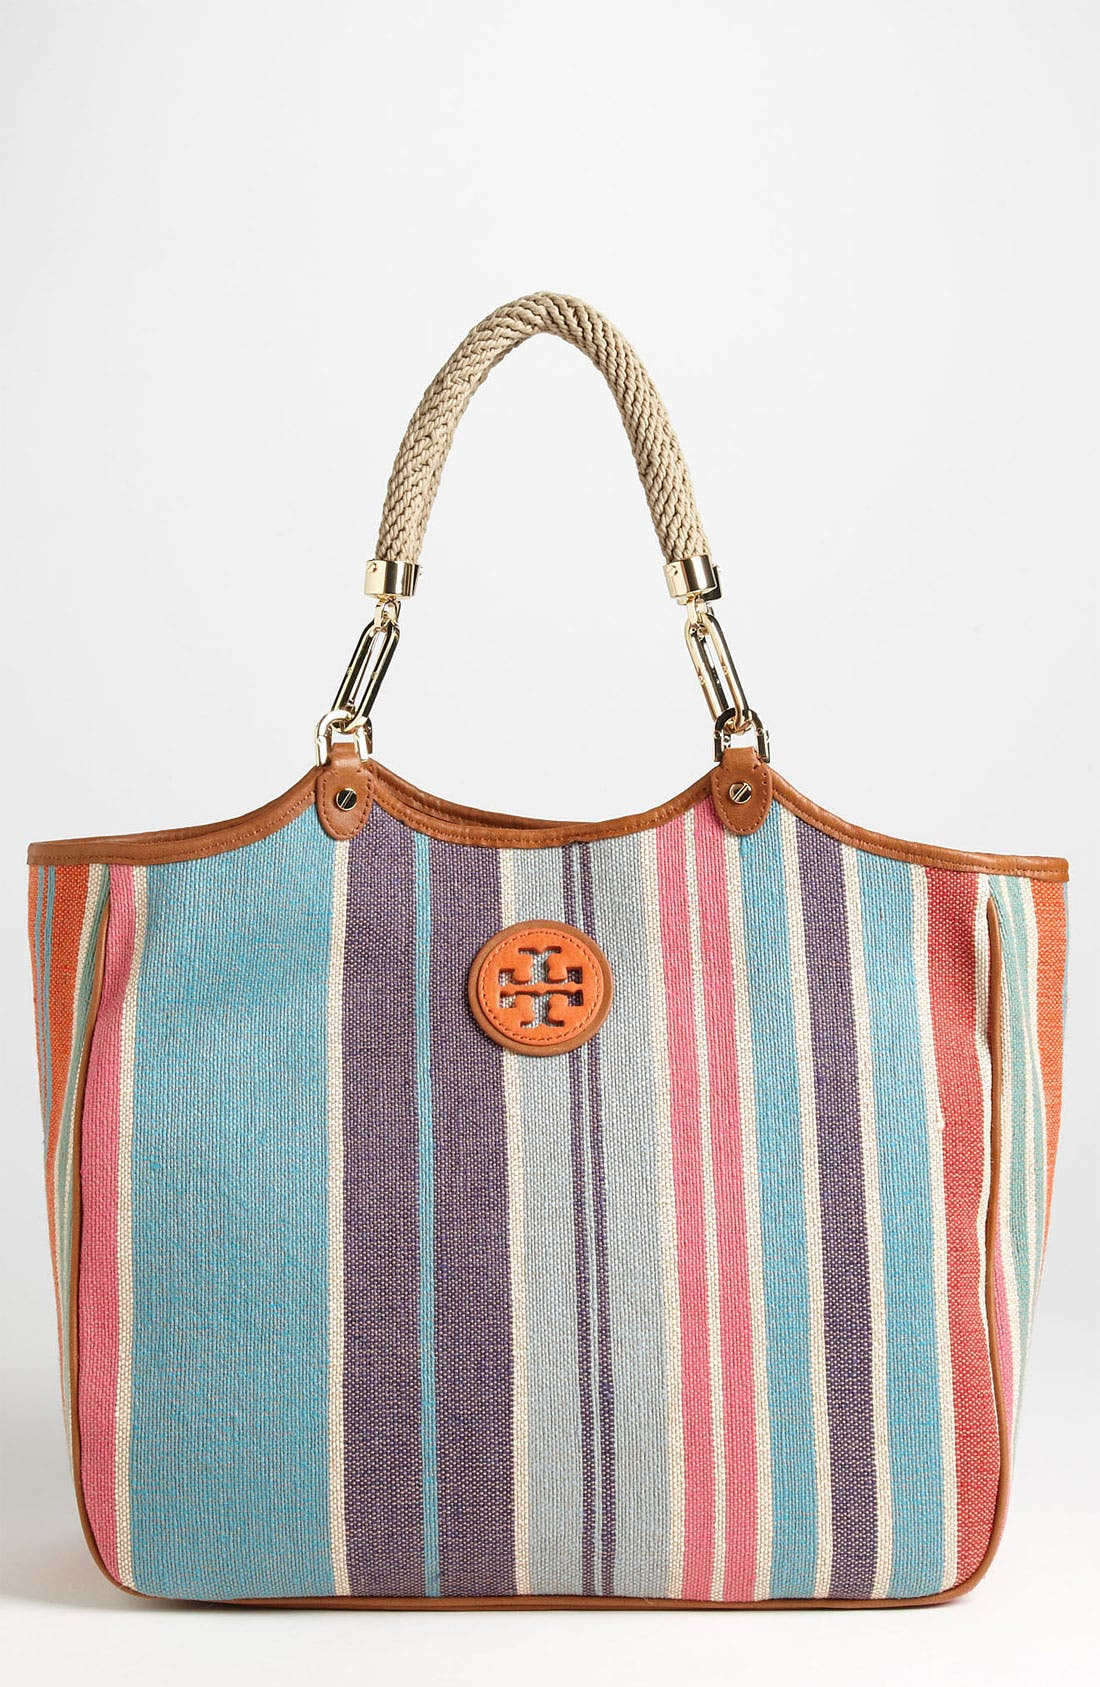 Alternate Image 1 Selected - Tory Burch 'Baja Channing' Tote